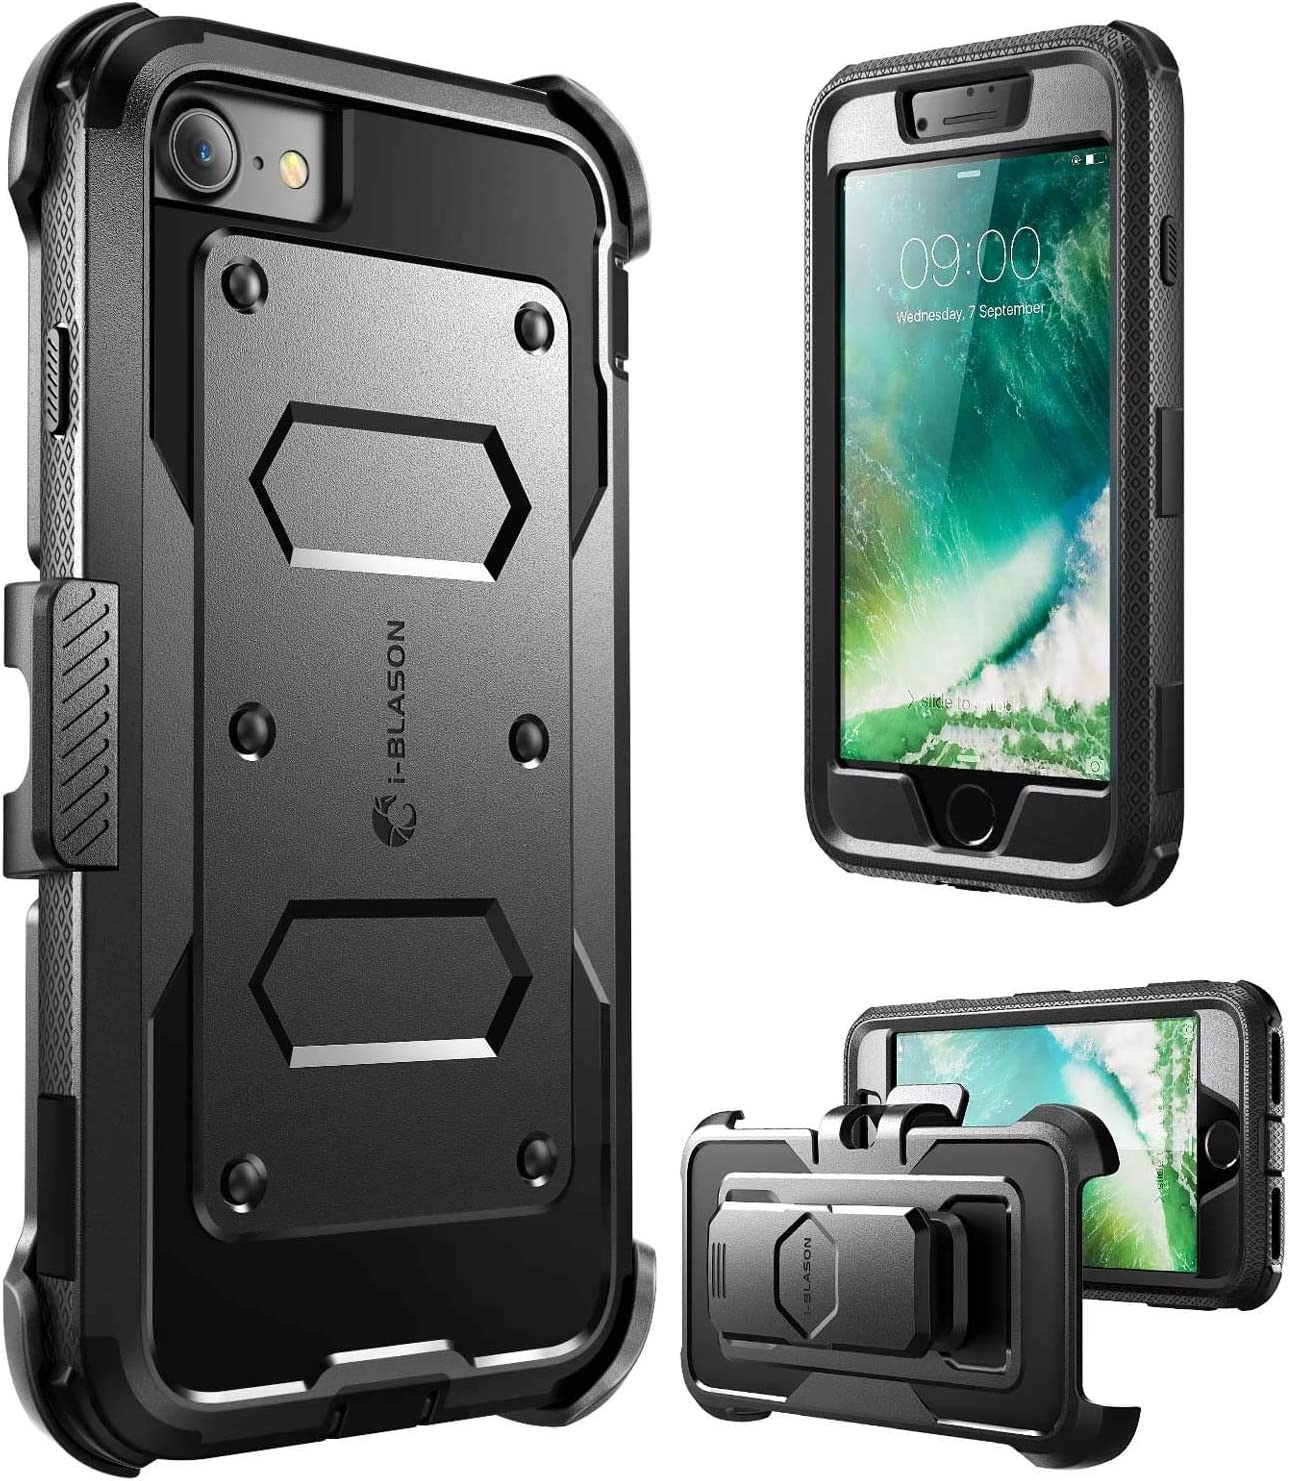 i-Blason Armorbox Case Designed for iPhone SE2 2020 /iPhone 7/iPhone 8, Built in [Screen Protector] Full-Body Rugged Holster Case for iPhone SE 2nd generation, Black